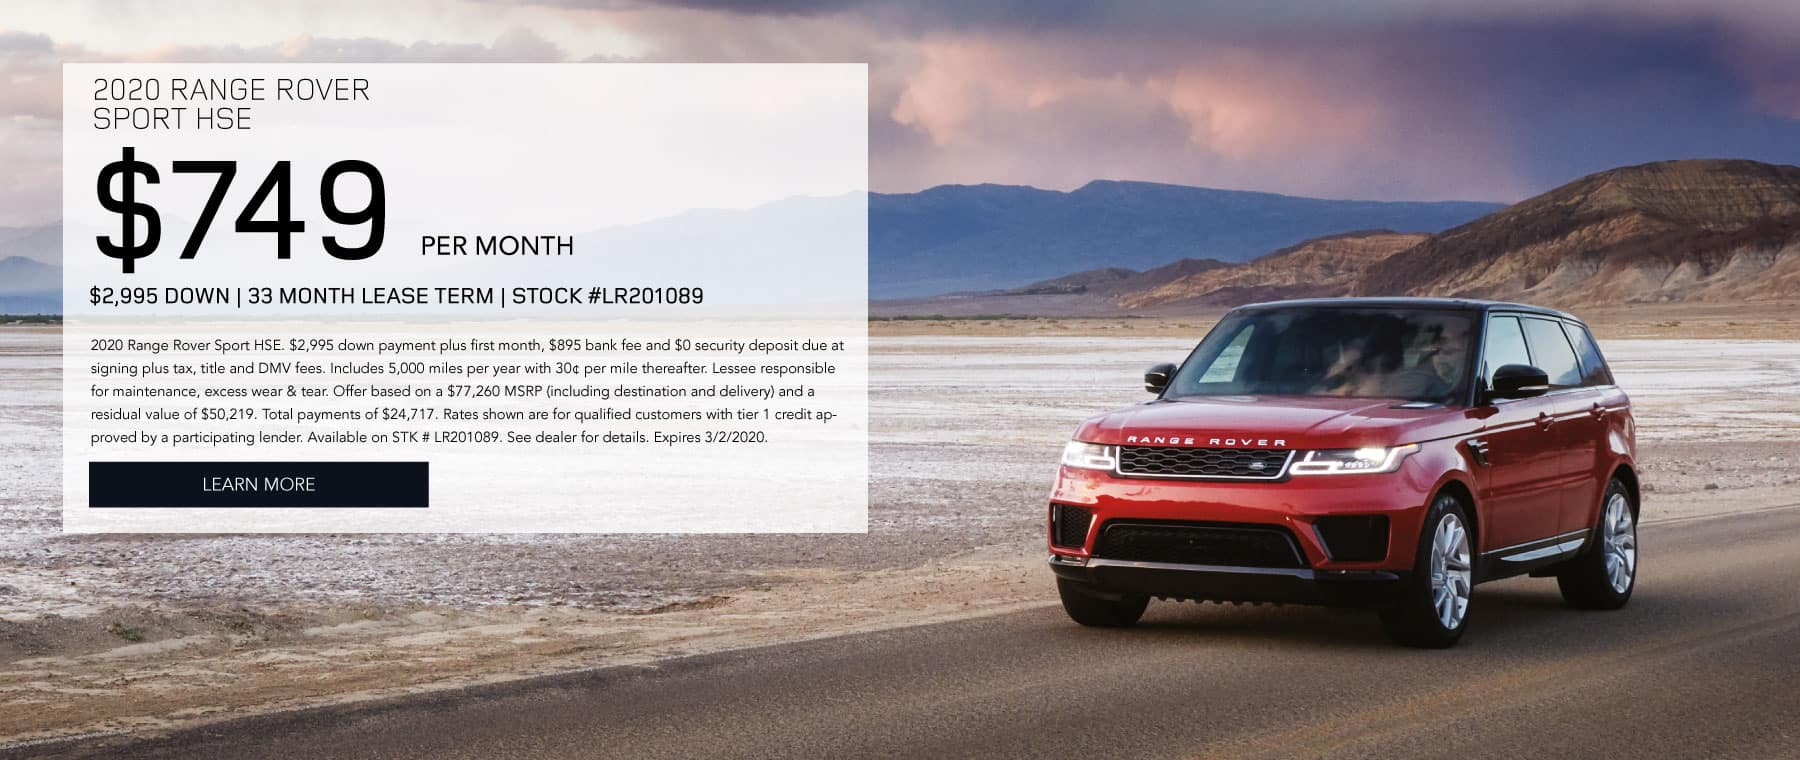 2020 RANGE ROVER SPORT HSE. $749 per month. $2995 down. 33 month lease term. Stock #LR201089. 2020 Range Rover Sport HSE. $3,995 down payment plus first month, $895 bank fee and $0 security deposit due at signing plus tax, title and DMV fees. Includes 5,000 miles per year with 30¢ per mile thereafter. Lessee responsible for maintenance, excess wear & tear. Offer based on a $77,260 MSRP (including destination and delivery) and a residual value of $50,219. Total payments of $24,717. Rates shown are for qualified customers with tier 1 credit approved by a participating lender. Available on STK # LR201089. See dealer for details. Expires 3/2/2020. Click to learn more. Red Range Rover Sport driving in desert.